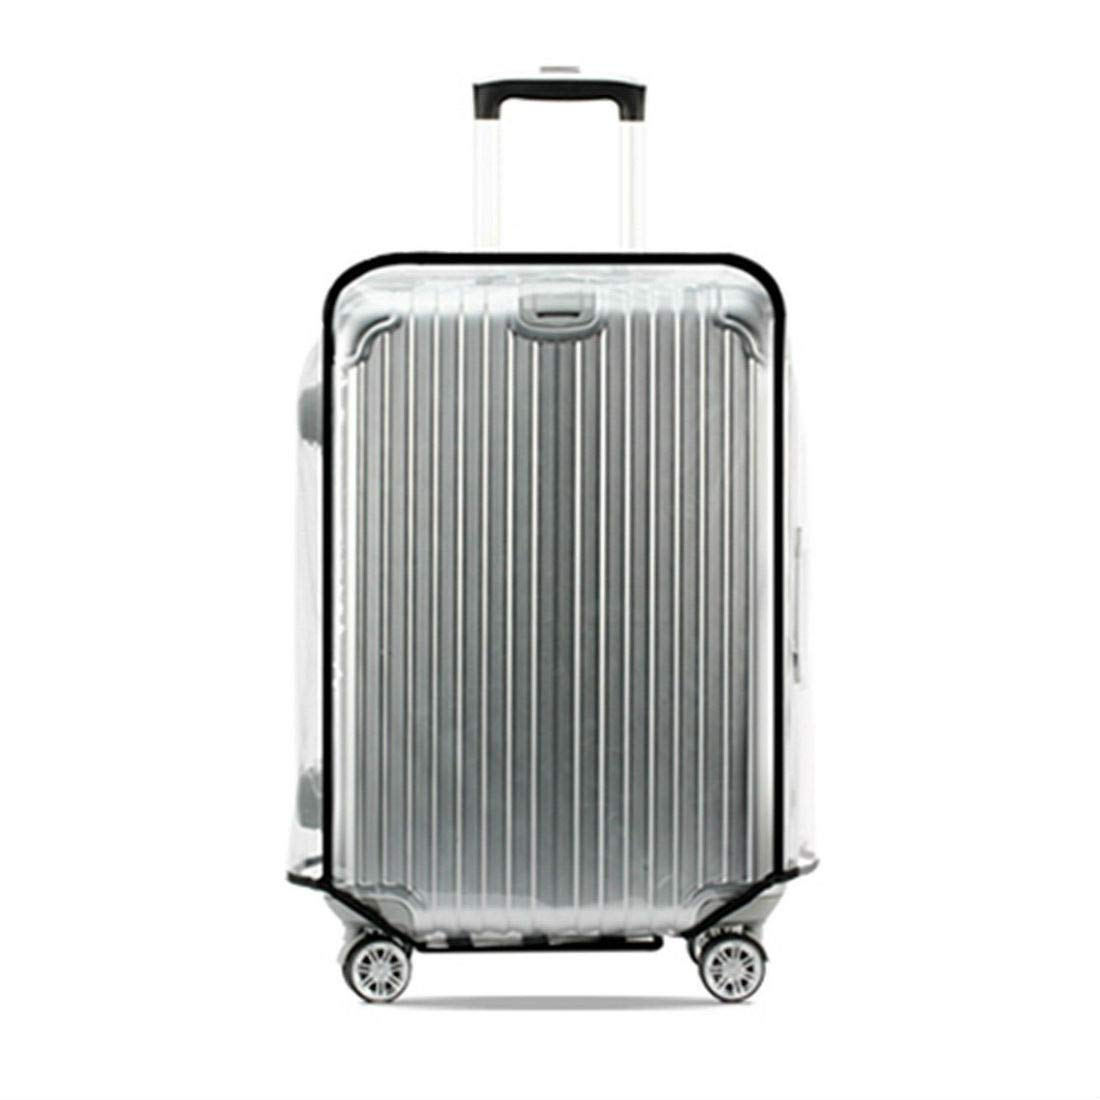 Waterproof Clear Transparent Luggage Suitcase Cover Case Protector Travel 20-28'' (24'')